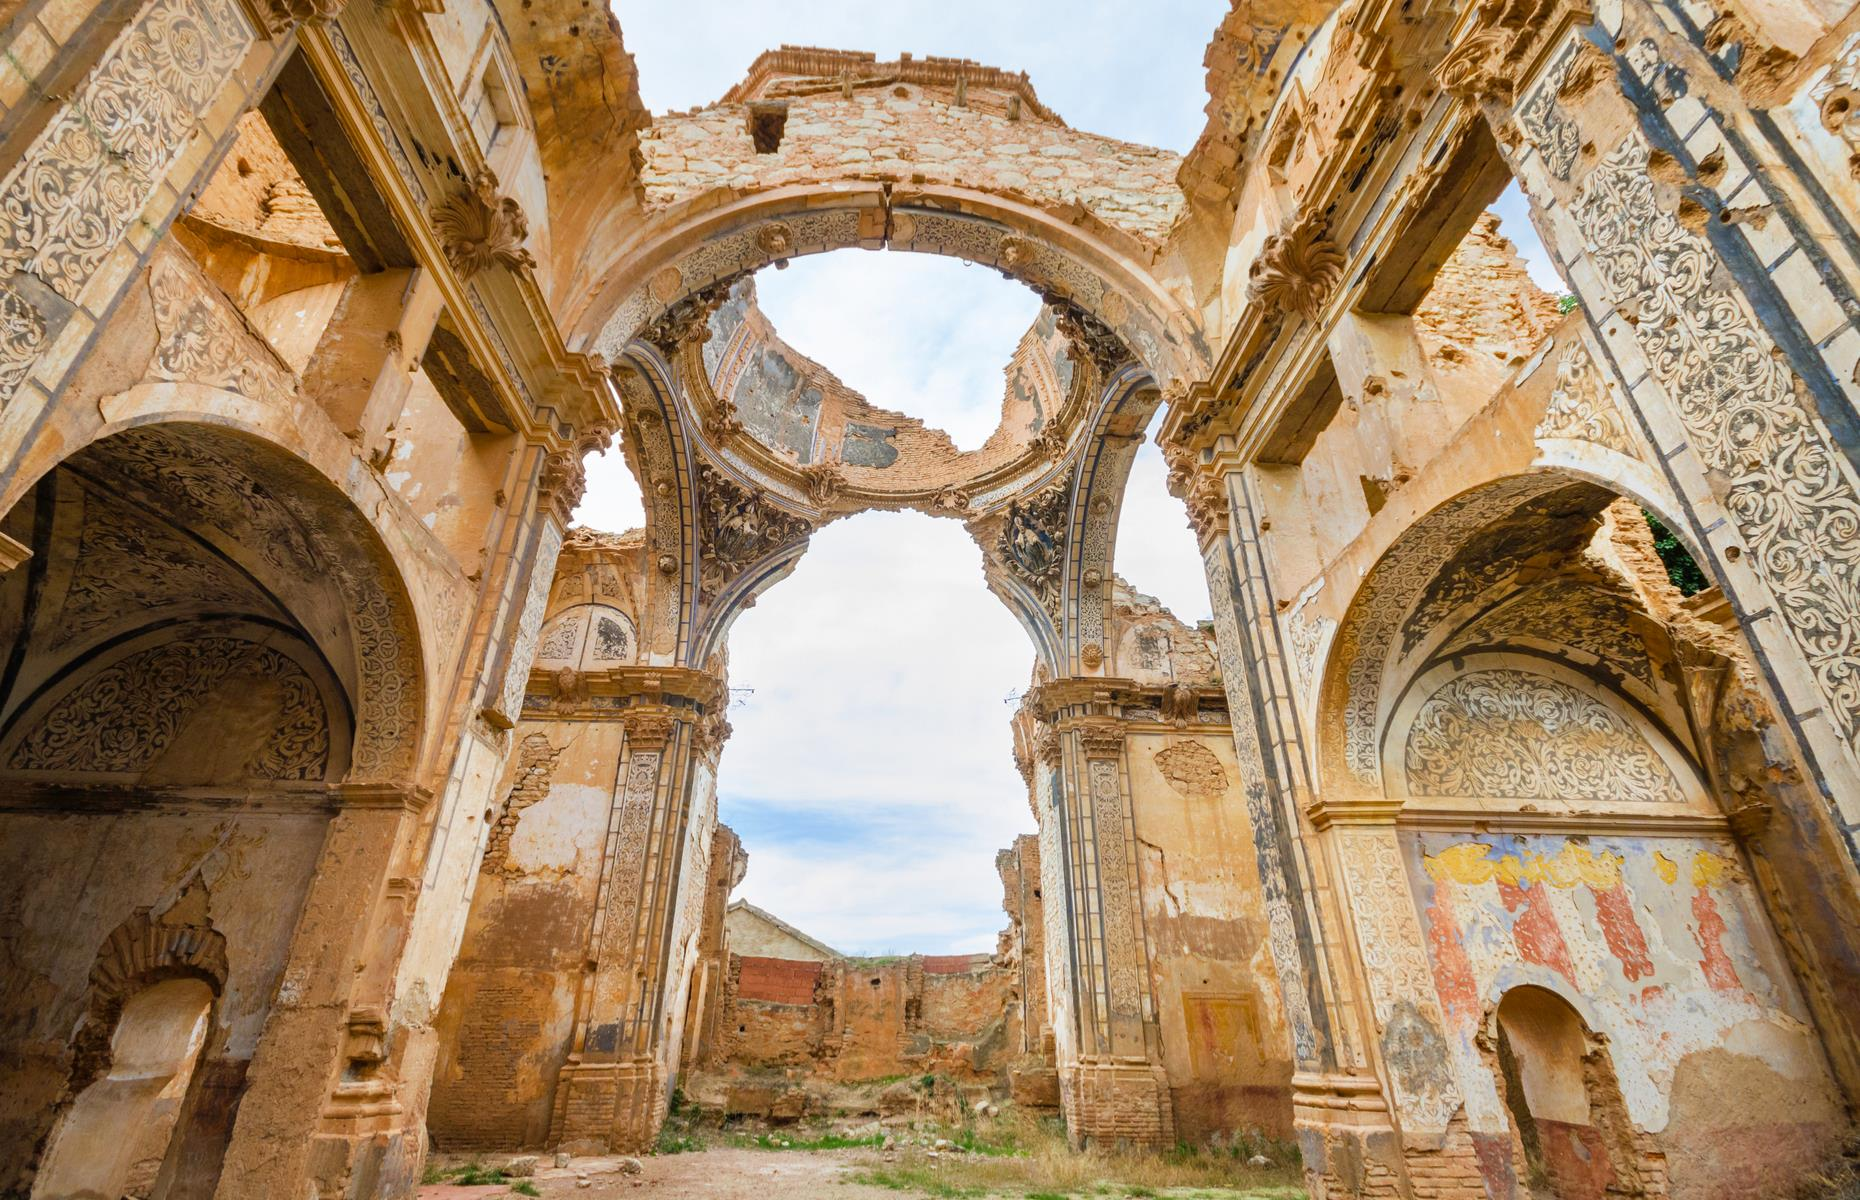 Slide 19 of 64: Piles of rubble still sit among the crumbling walls which are scarred with bullet holes and bleached by the sun – and now weeds are forcing their way into the cracks and crevices too. Tourists can usually visit Belchite on an organized tour during the day or after sunset.